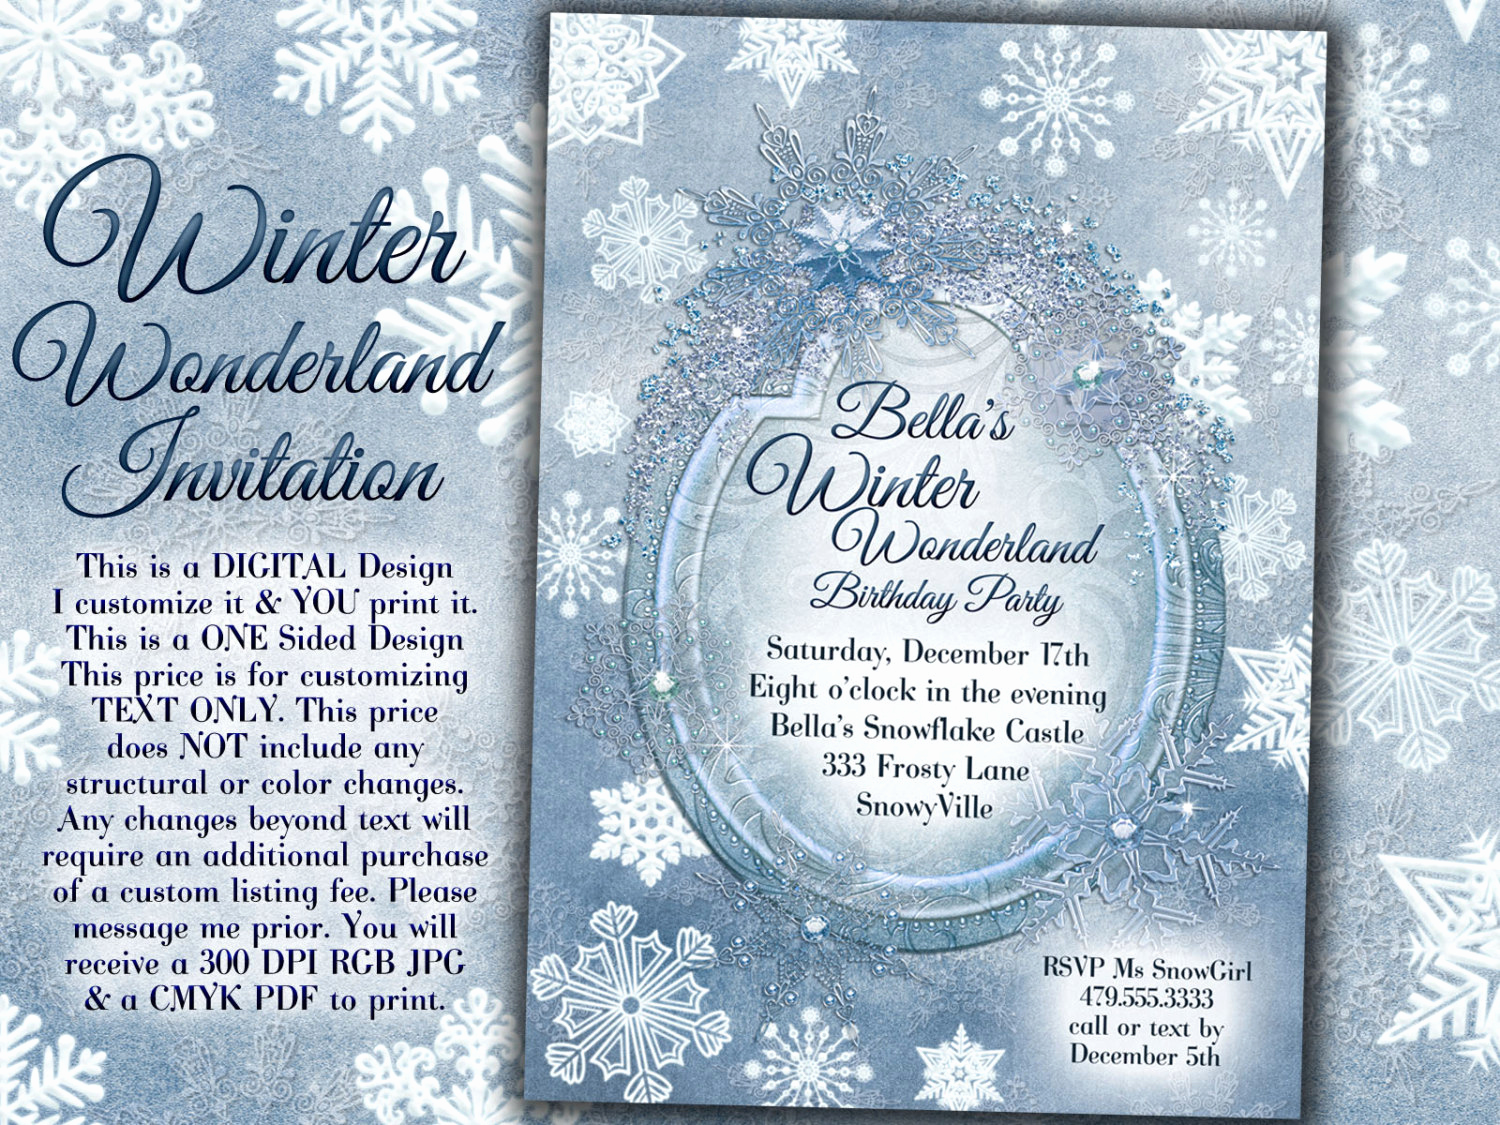 Winter Wonderland Invitation Ideas Elegant Winter Wonderland Party Winter Snowflake Invitation Winter